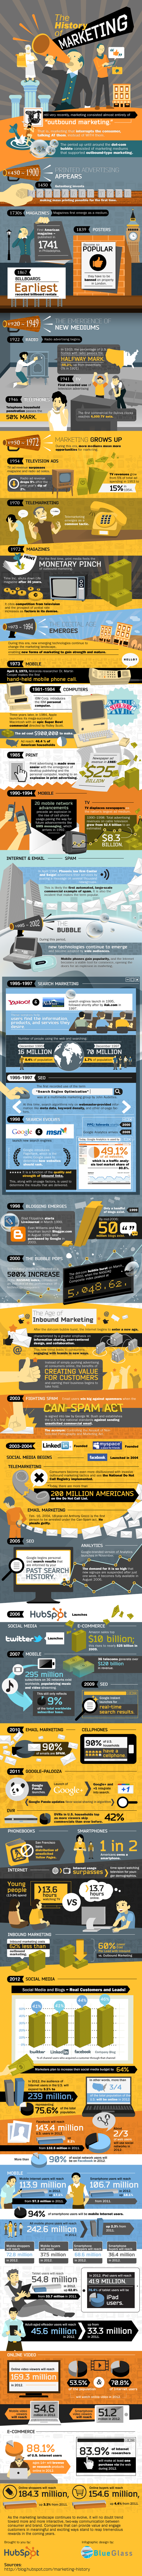 the-history-of-marketing-HUBSPOT